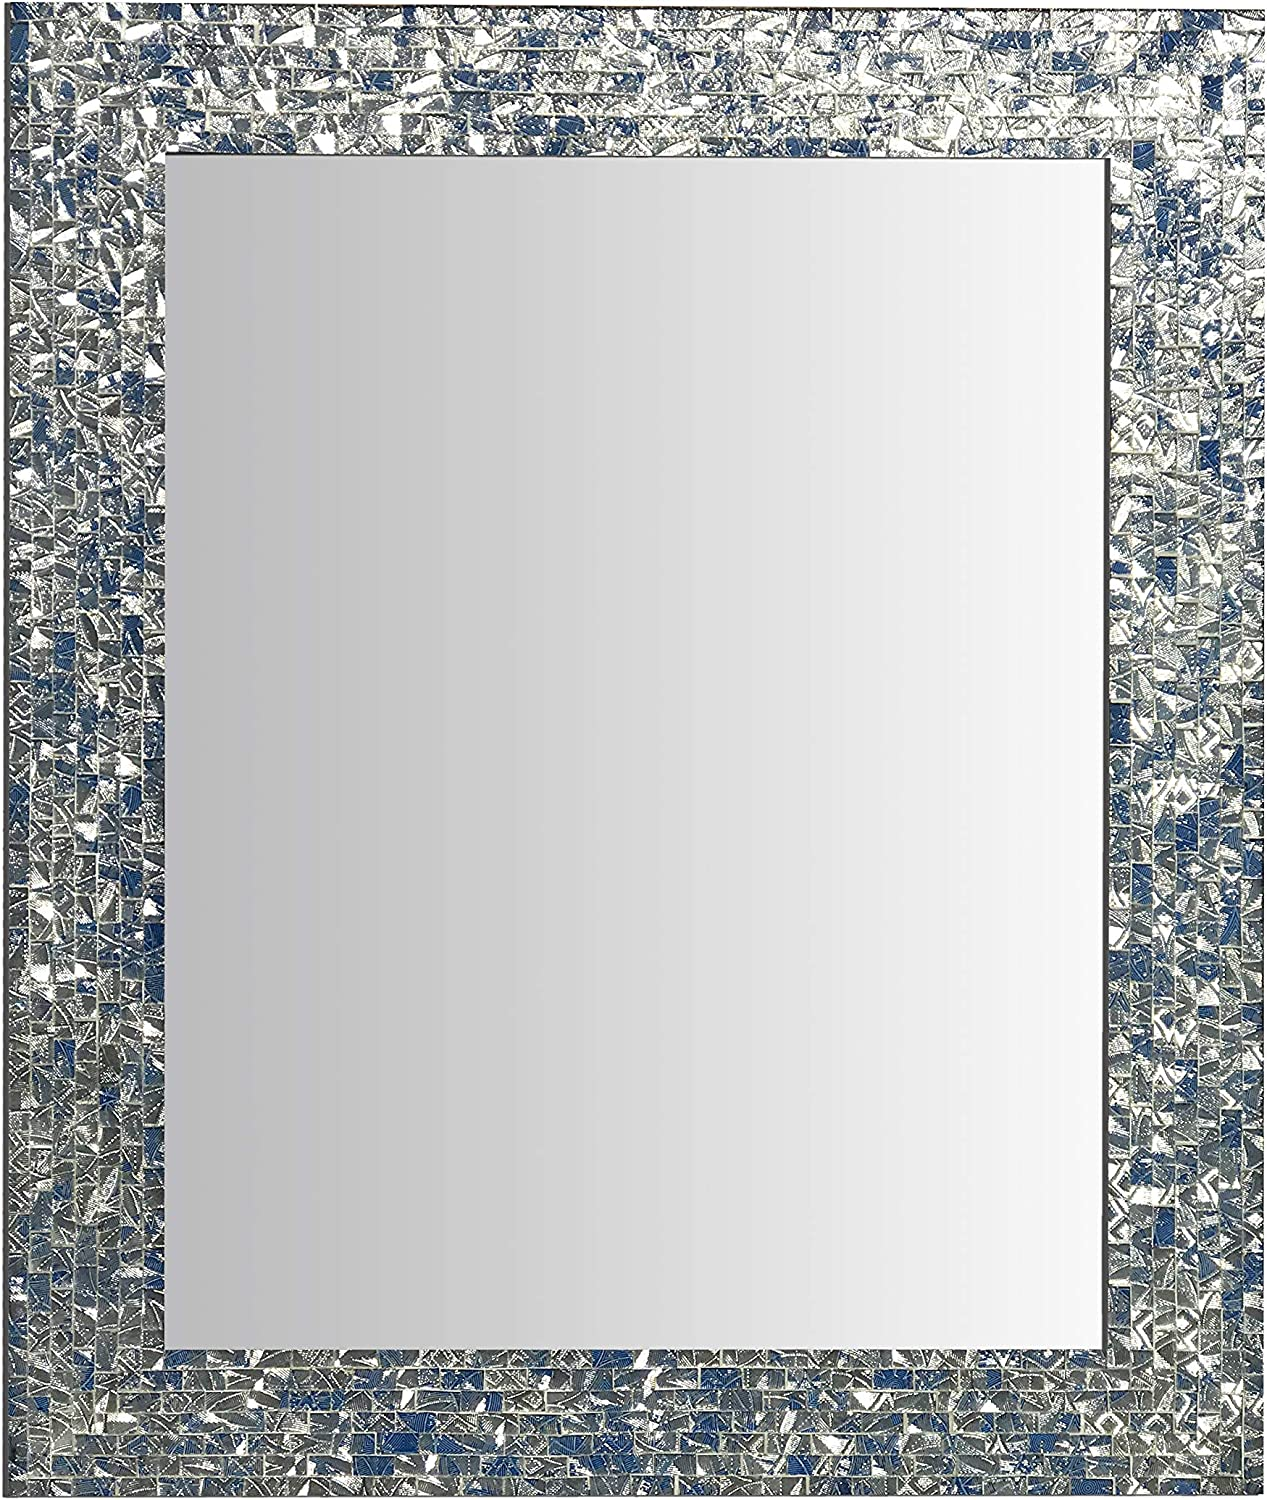 Multi-Colored Cobalt Blue & Silver, Luxe Mosaic Glass Framed Wall Mirror, Decorative Embossed Glass Mosaic Rectangular Vanity Mirror/Accent Mirror (30